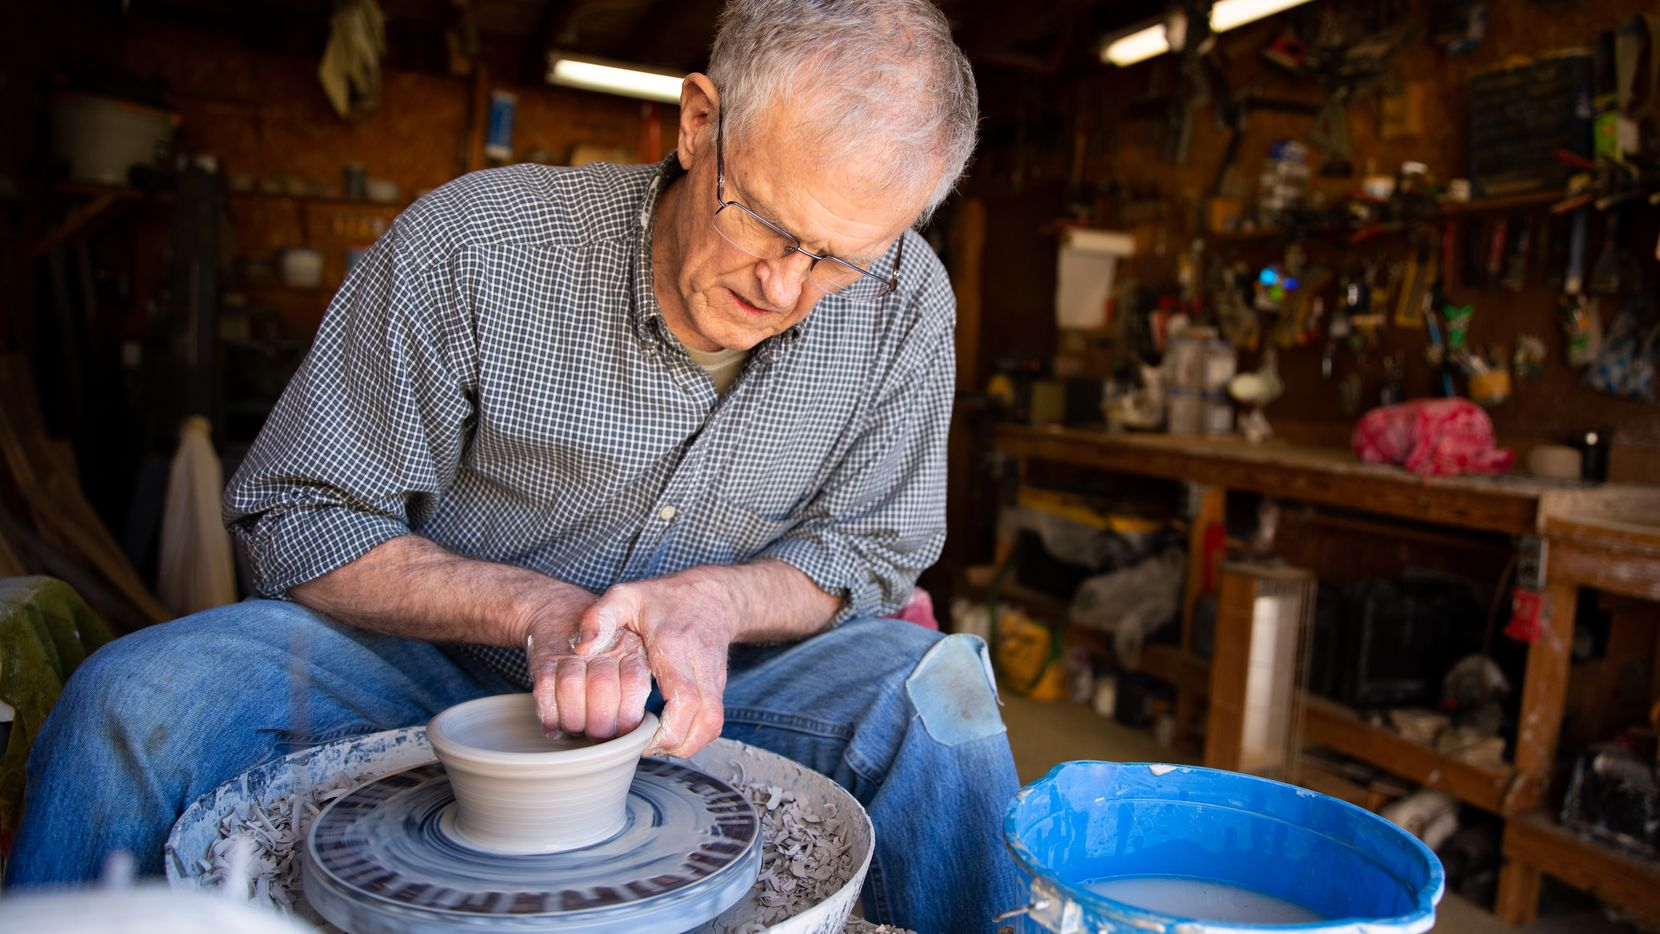 Bill Reed, a 74-year-old retiree, shapes a clay bowl in his garage workshop in Denton.